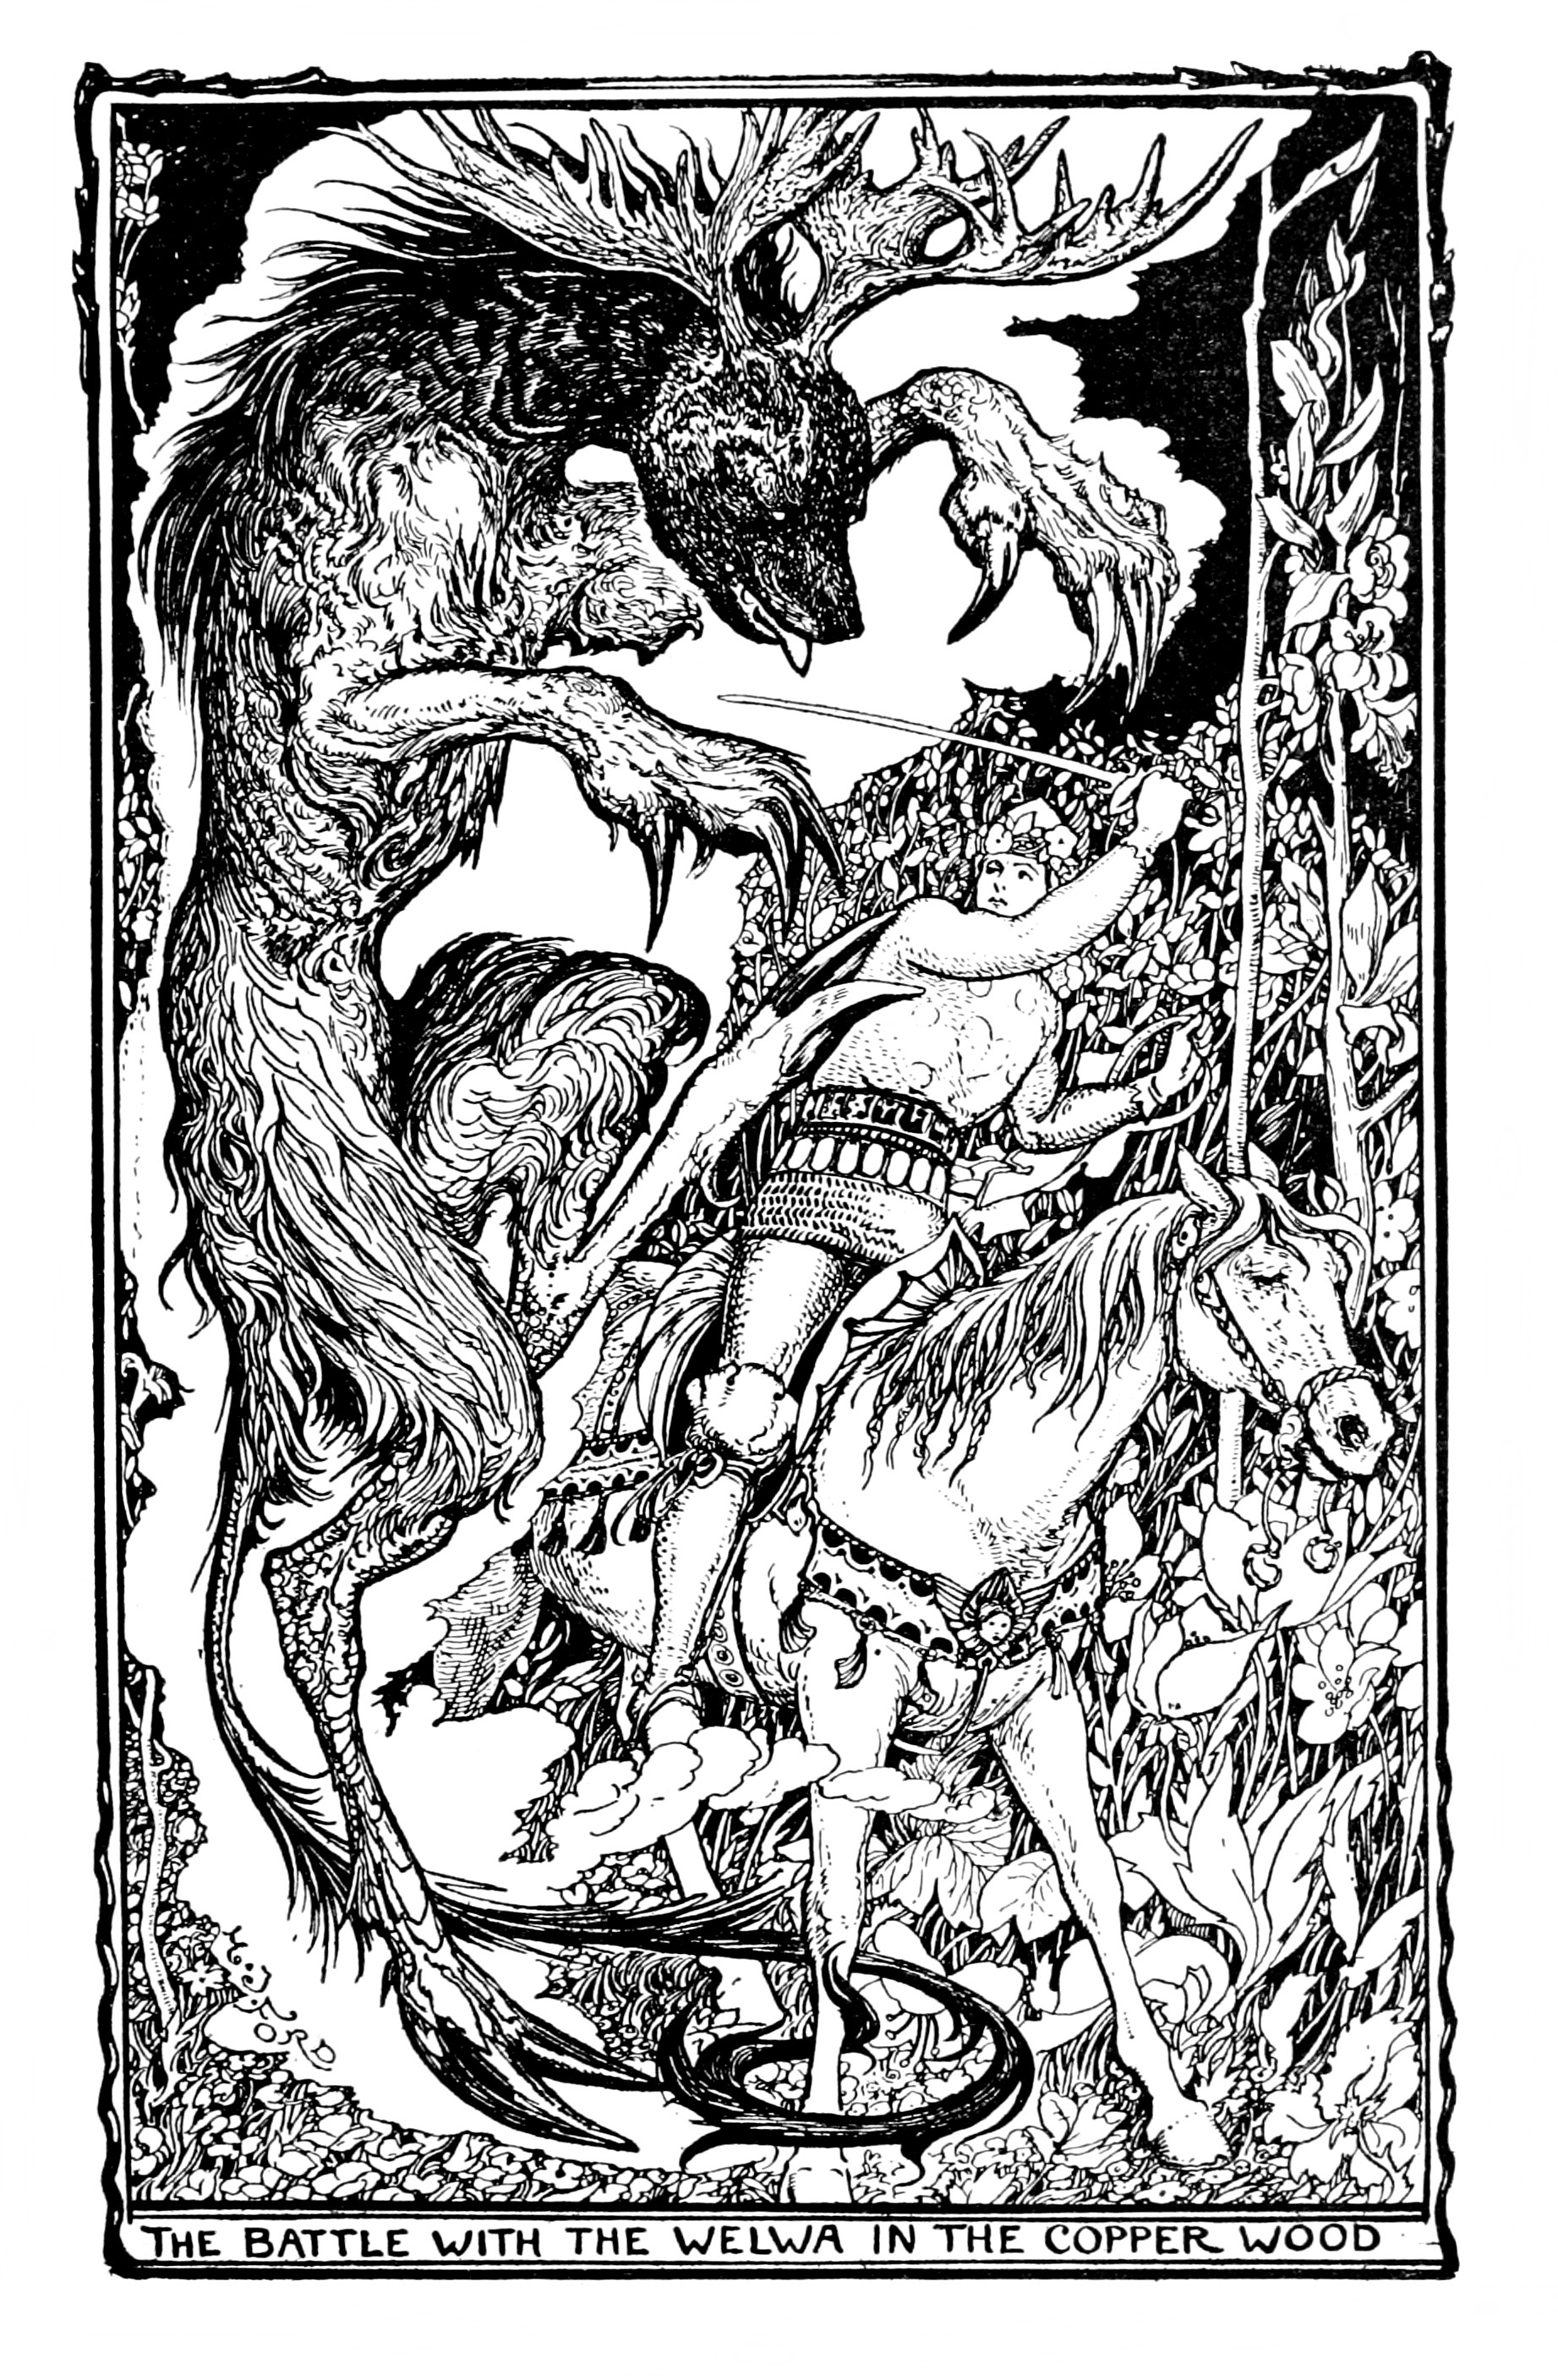 Henry Justice Ford - The violet fairy book, edited by Andrew Lang, 1906 (illustration 10)